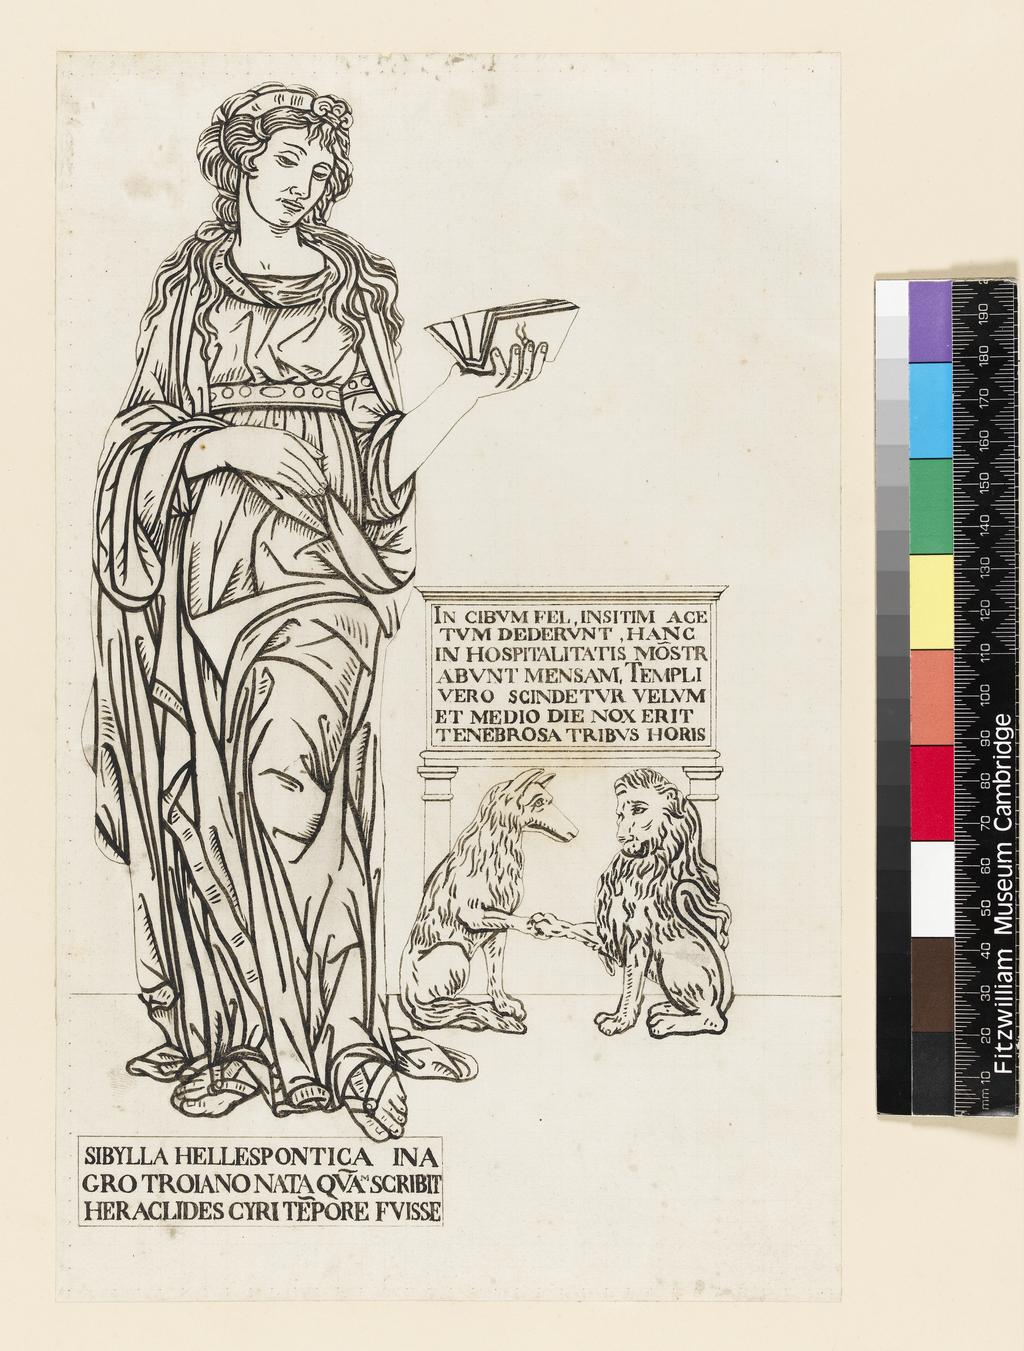 An image of Title/s: Drawing reduced from tracings taken from the inlaid marble pavement of Siena Cathedral during its restoration in the nineteenth centuryTitle/s: The Hellespontine Sibyl Maker/s: Maccari, Leopoldo (draughtsman) [ULAN info: Italian artist, 1850-1894?]Technique Description: pen and black ink on lightly squared paper Dimensions: height: 280 mm, width: 186 mm